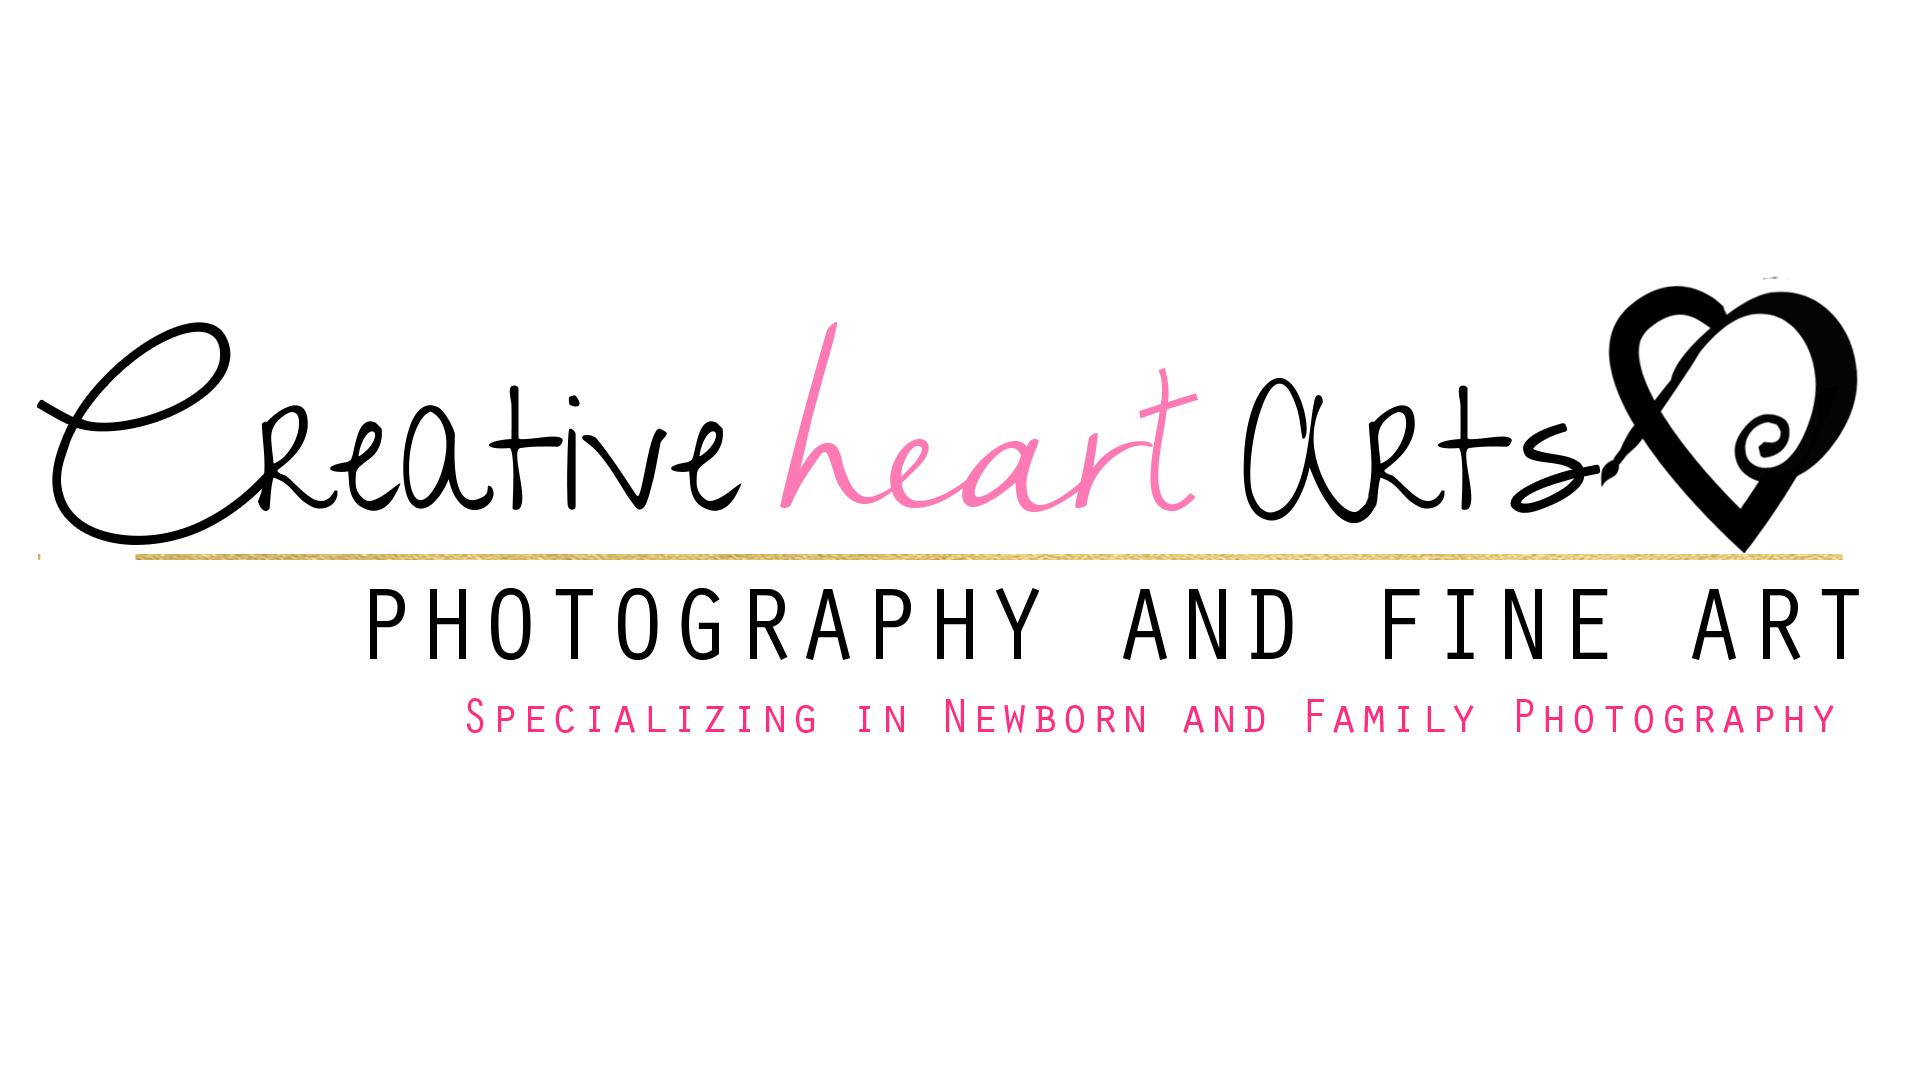 Creative Heart Arts